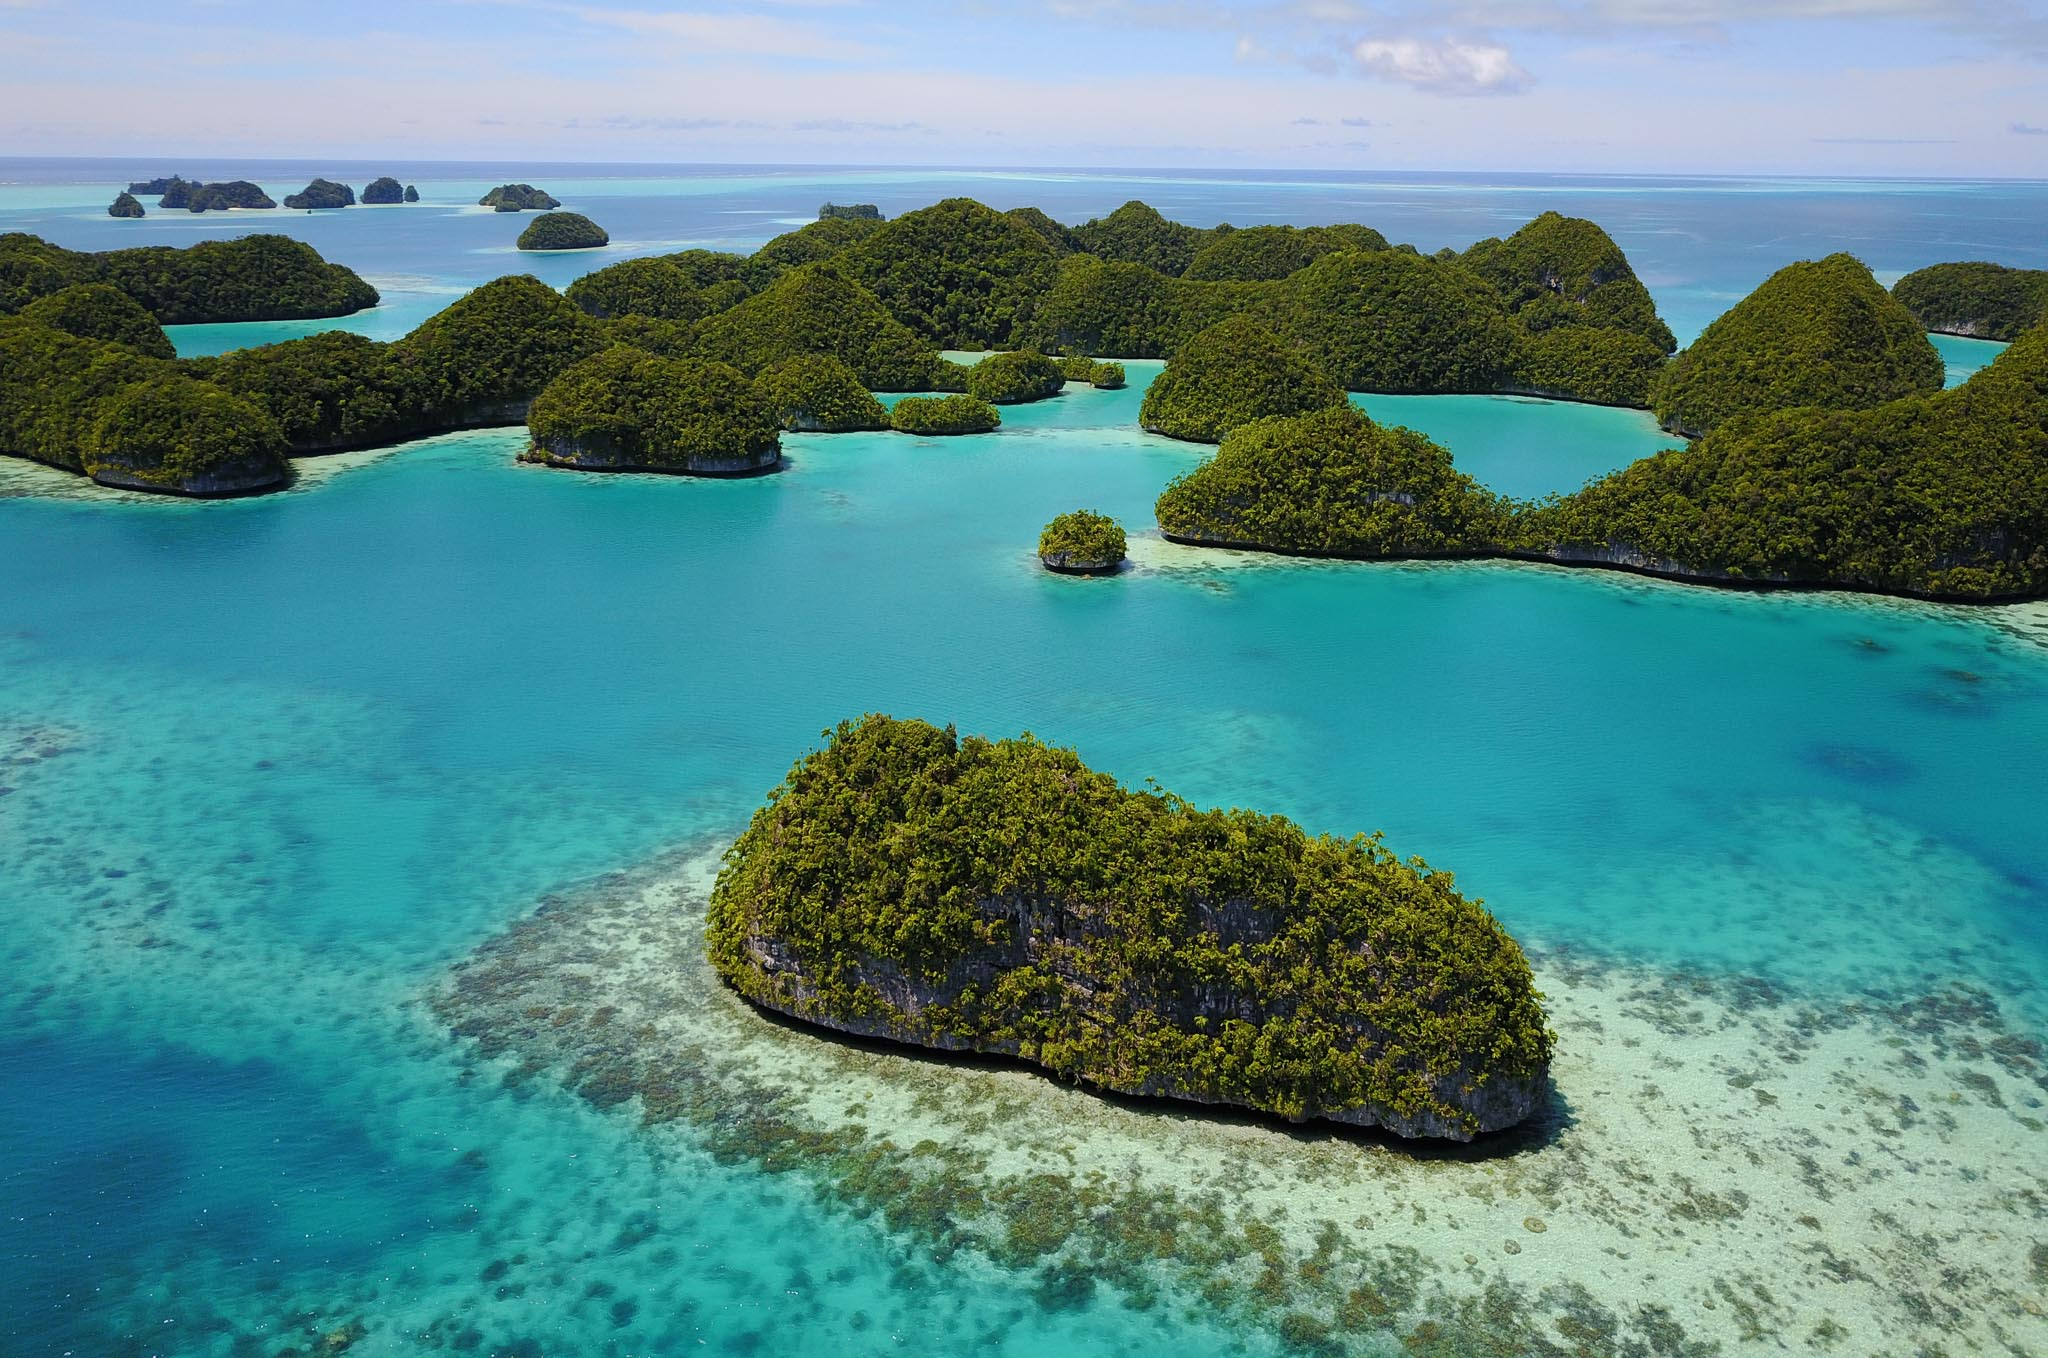 70 Islands Wildlife Preserve Rock Islands Palau